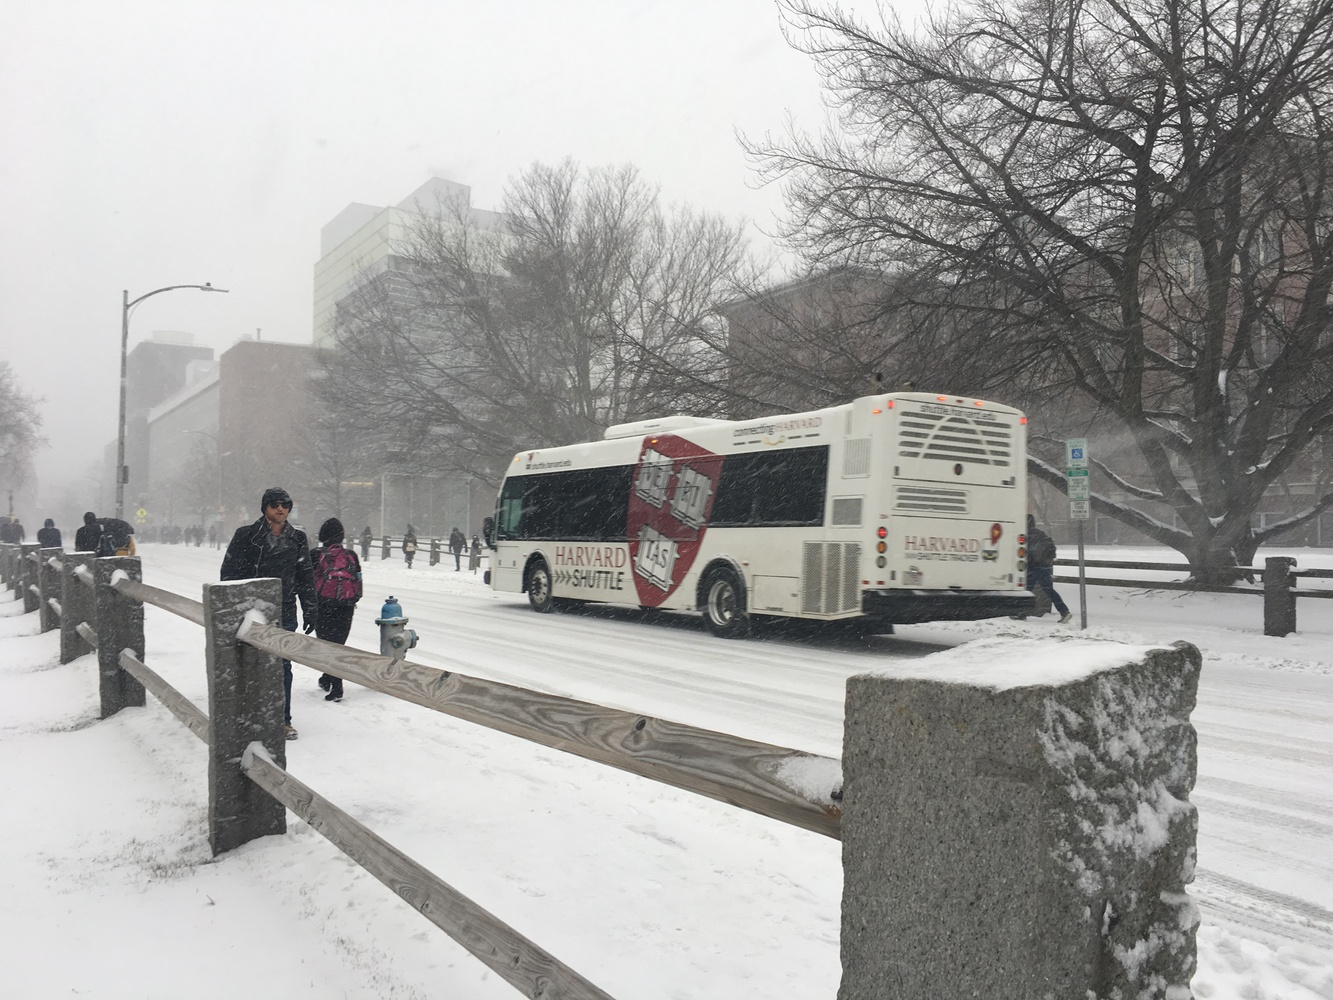 Hustling down Oxford Street on a brutal weekday morning, the Harvard Shuttle is a dependable ally in the battle against snow, 9am classes and Uber surge pricing.